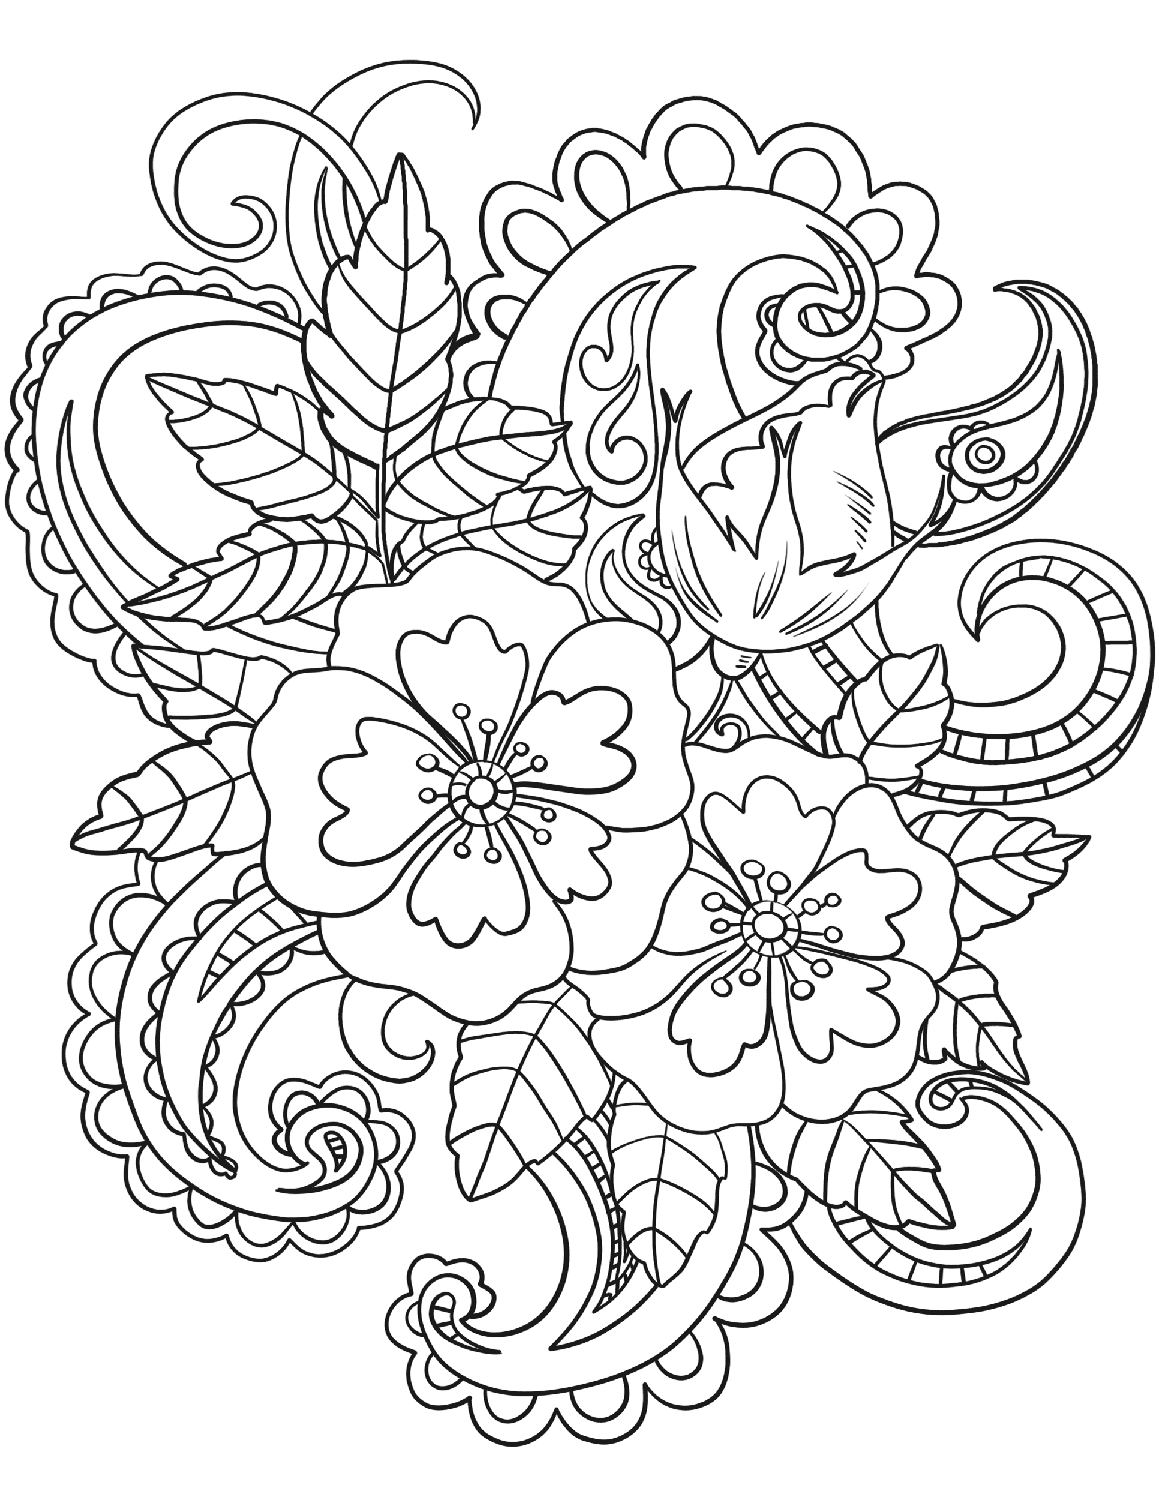 patterns for colouring for adults pattern coloring pages best coloring pages for kids patterns adults for colouring for